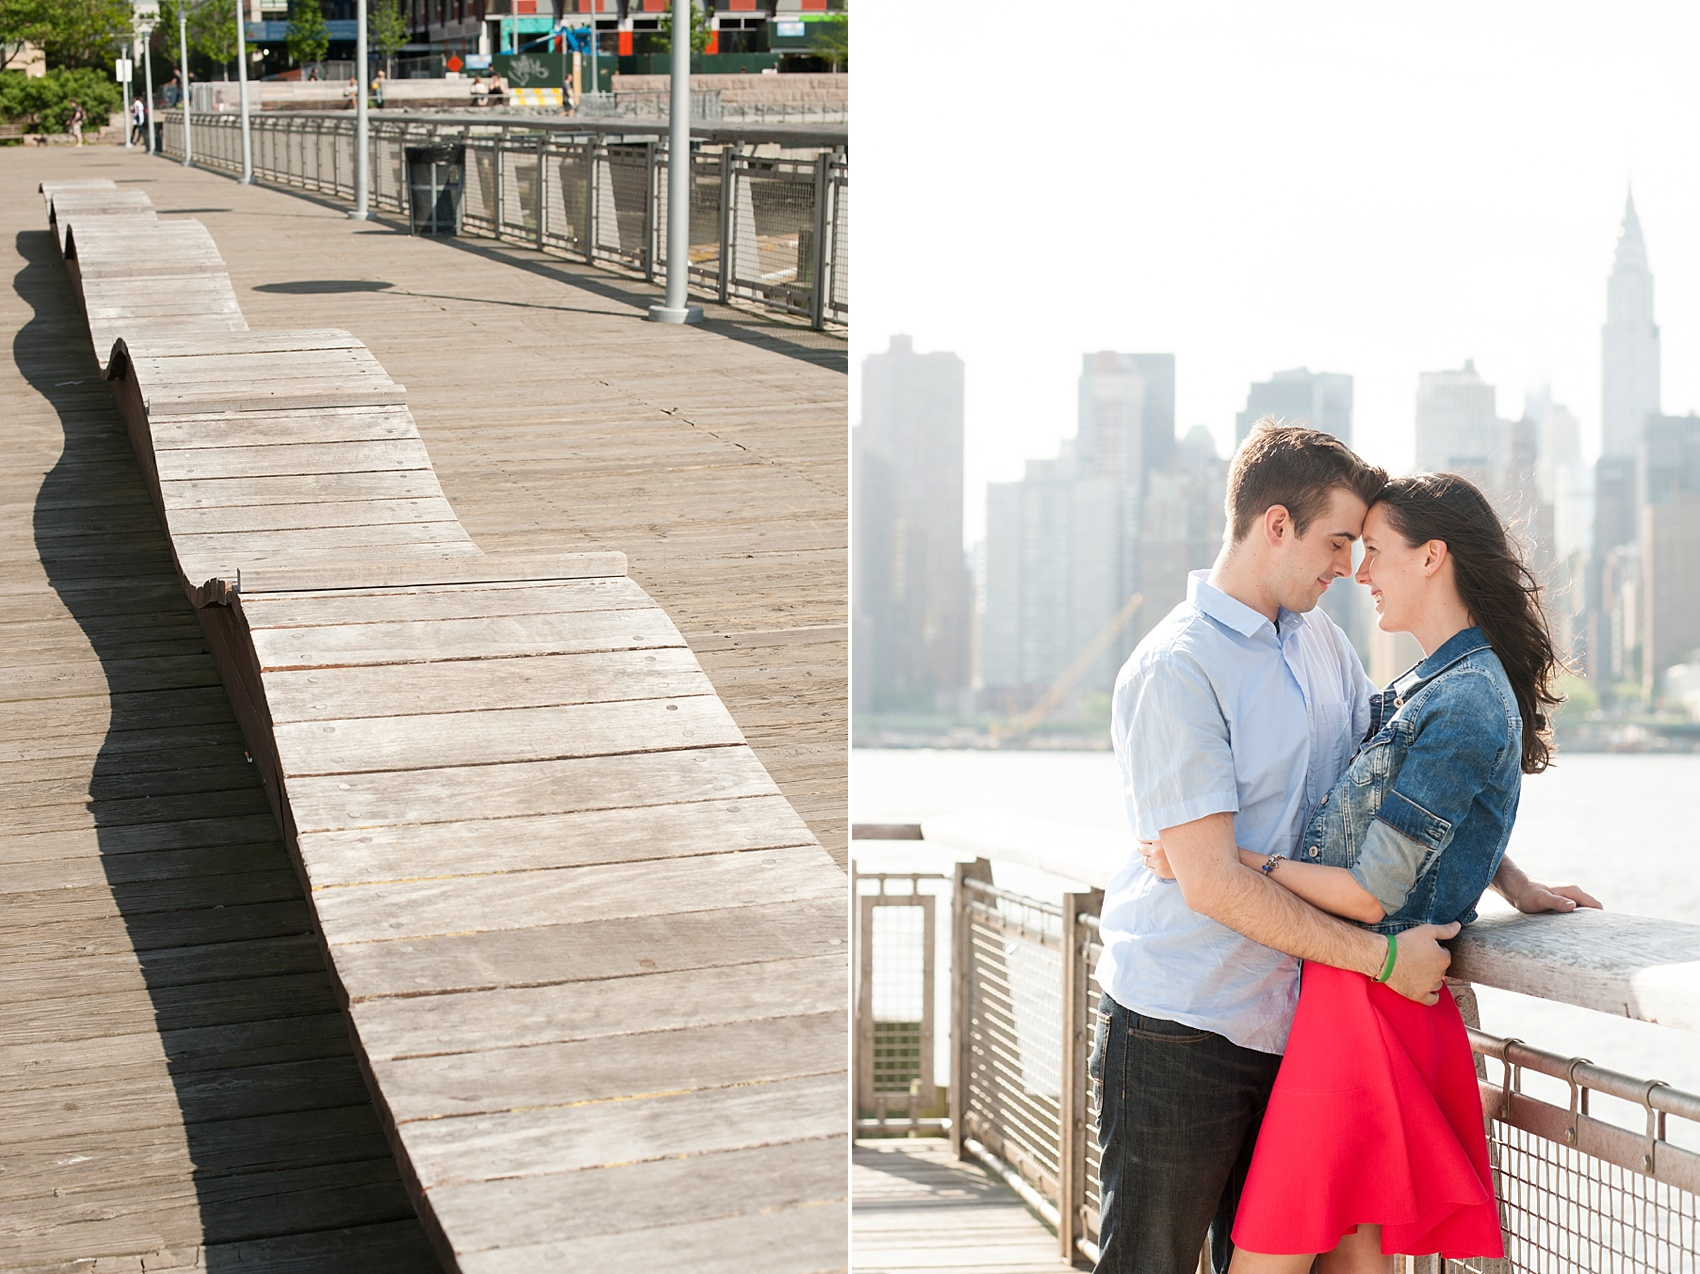 Long Island City waterfront engagement session at Gantry State Park by Mikkel Paige Photography, NYC wedding photographer. The park overlooks the Manhattan/NYC Skyline.